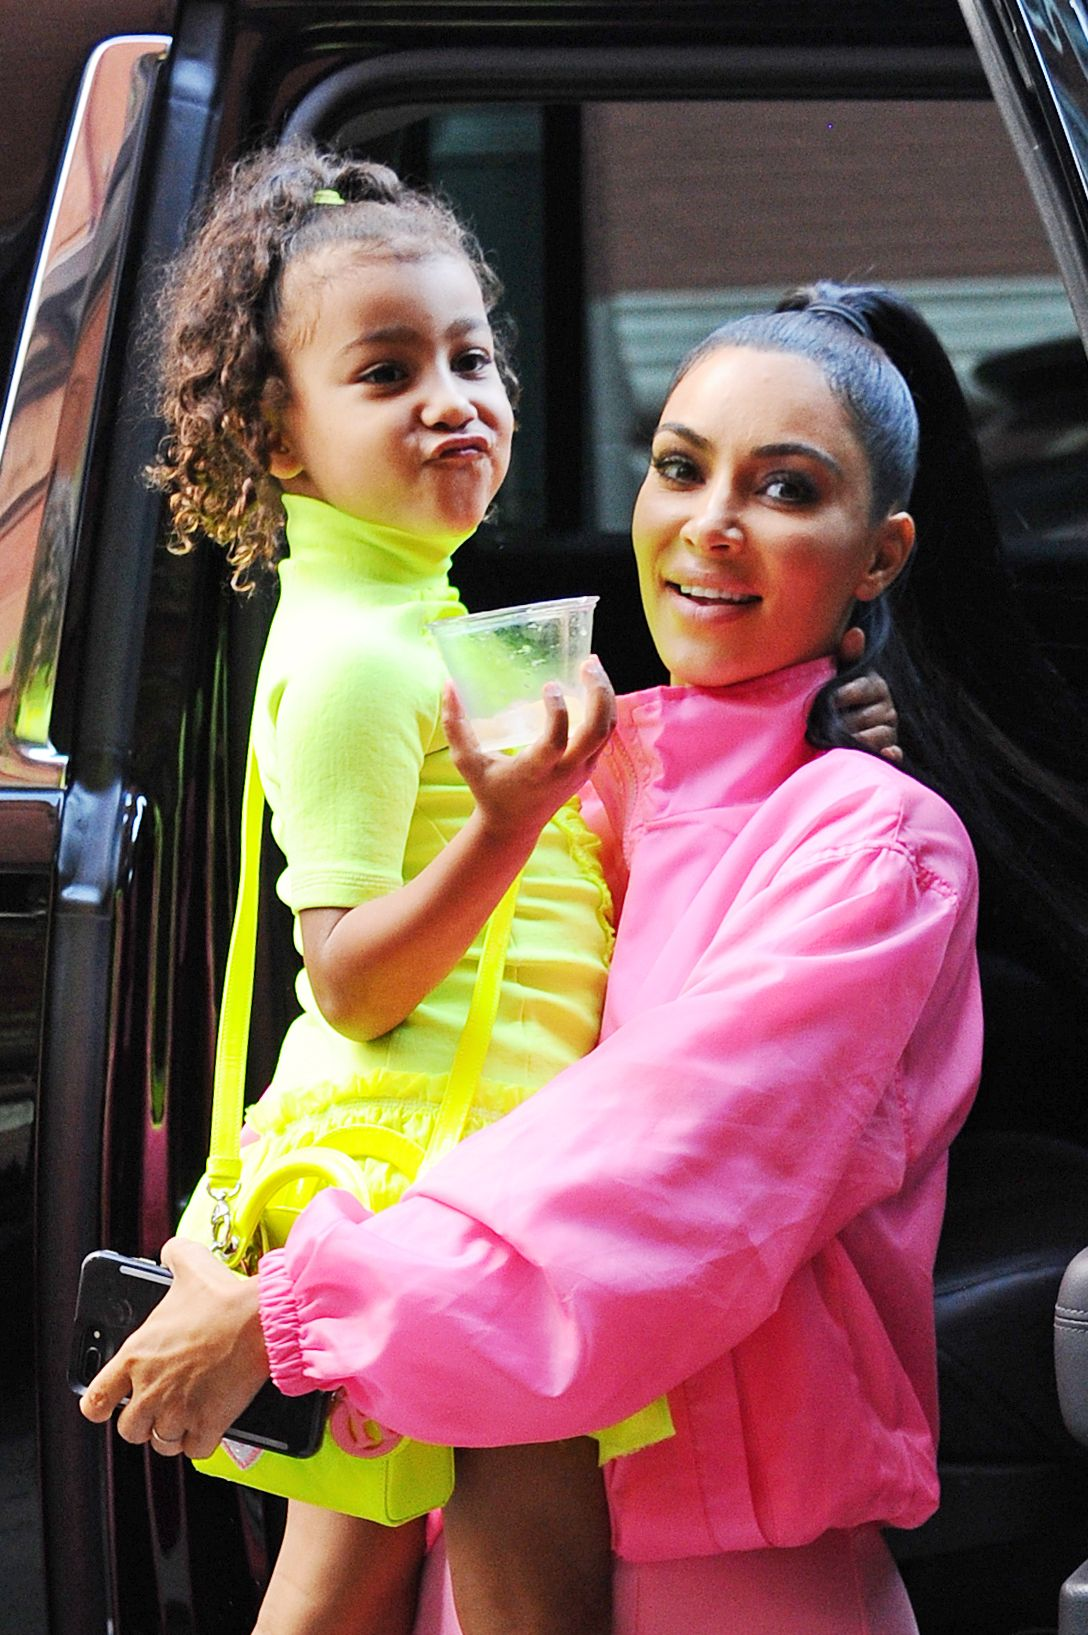 Uh, Kim Kardashian Stopped For a Bikini Wax and Manicure Before North West Was Born